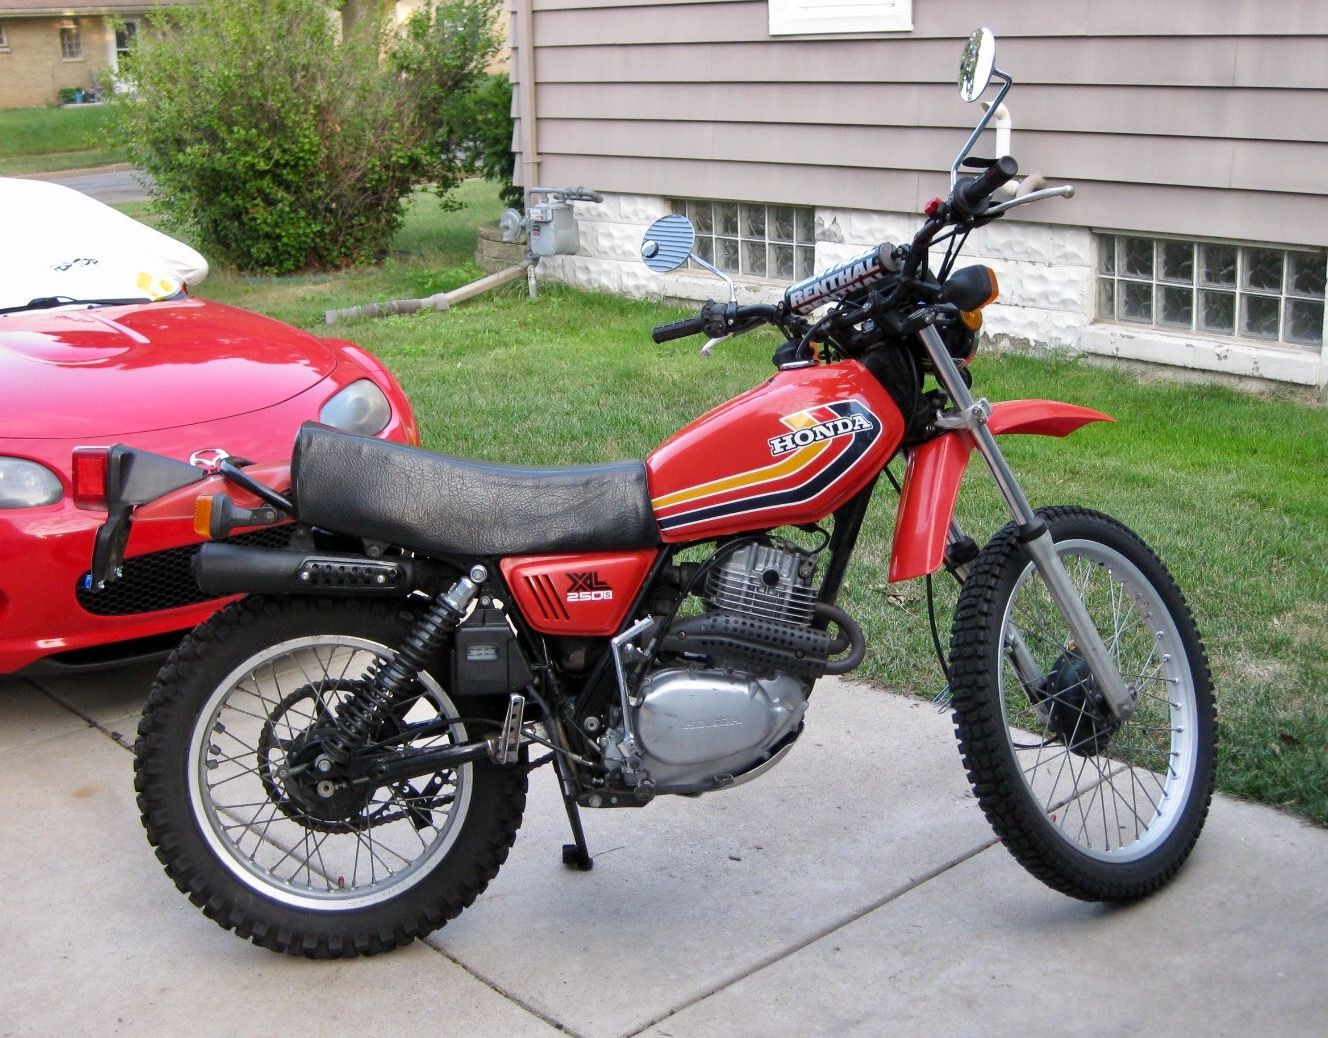 1978 Honda XL250S.  Can't wait for Summer!